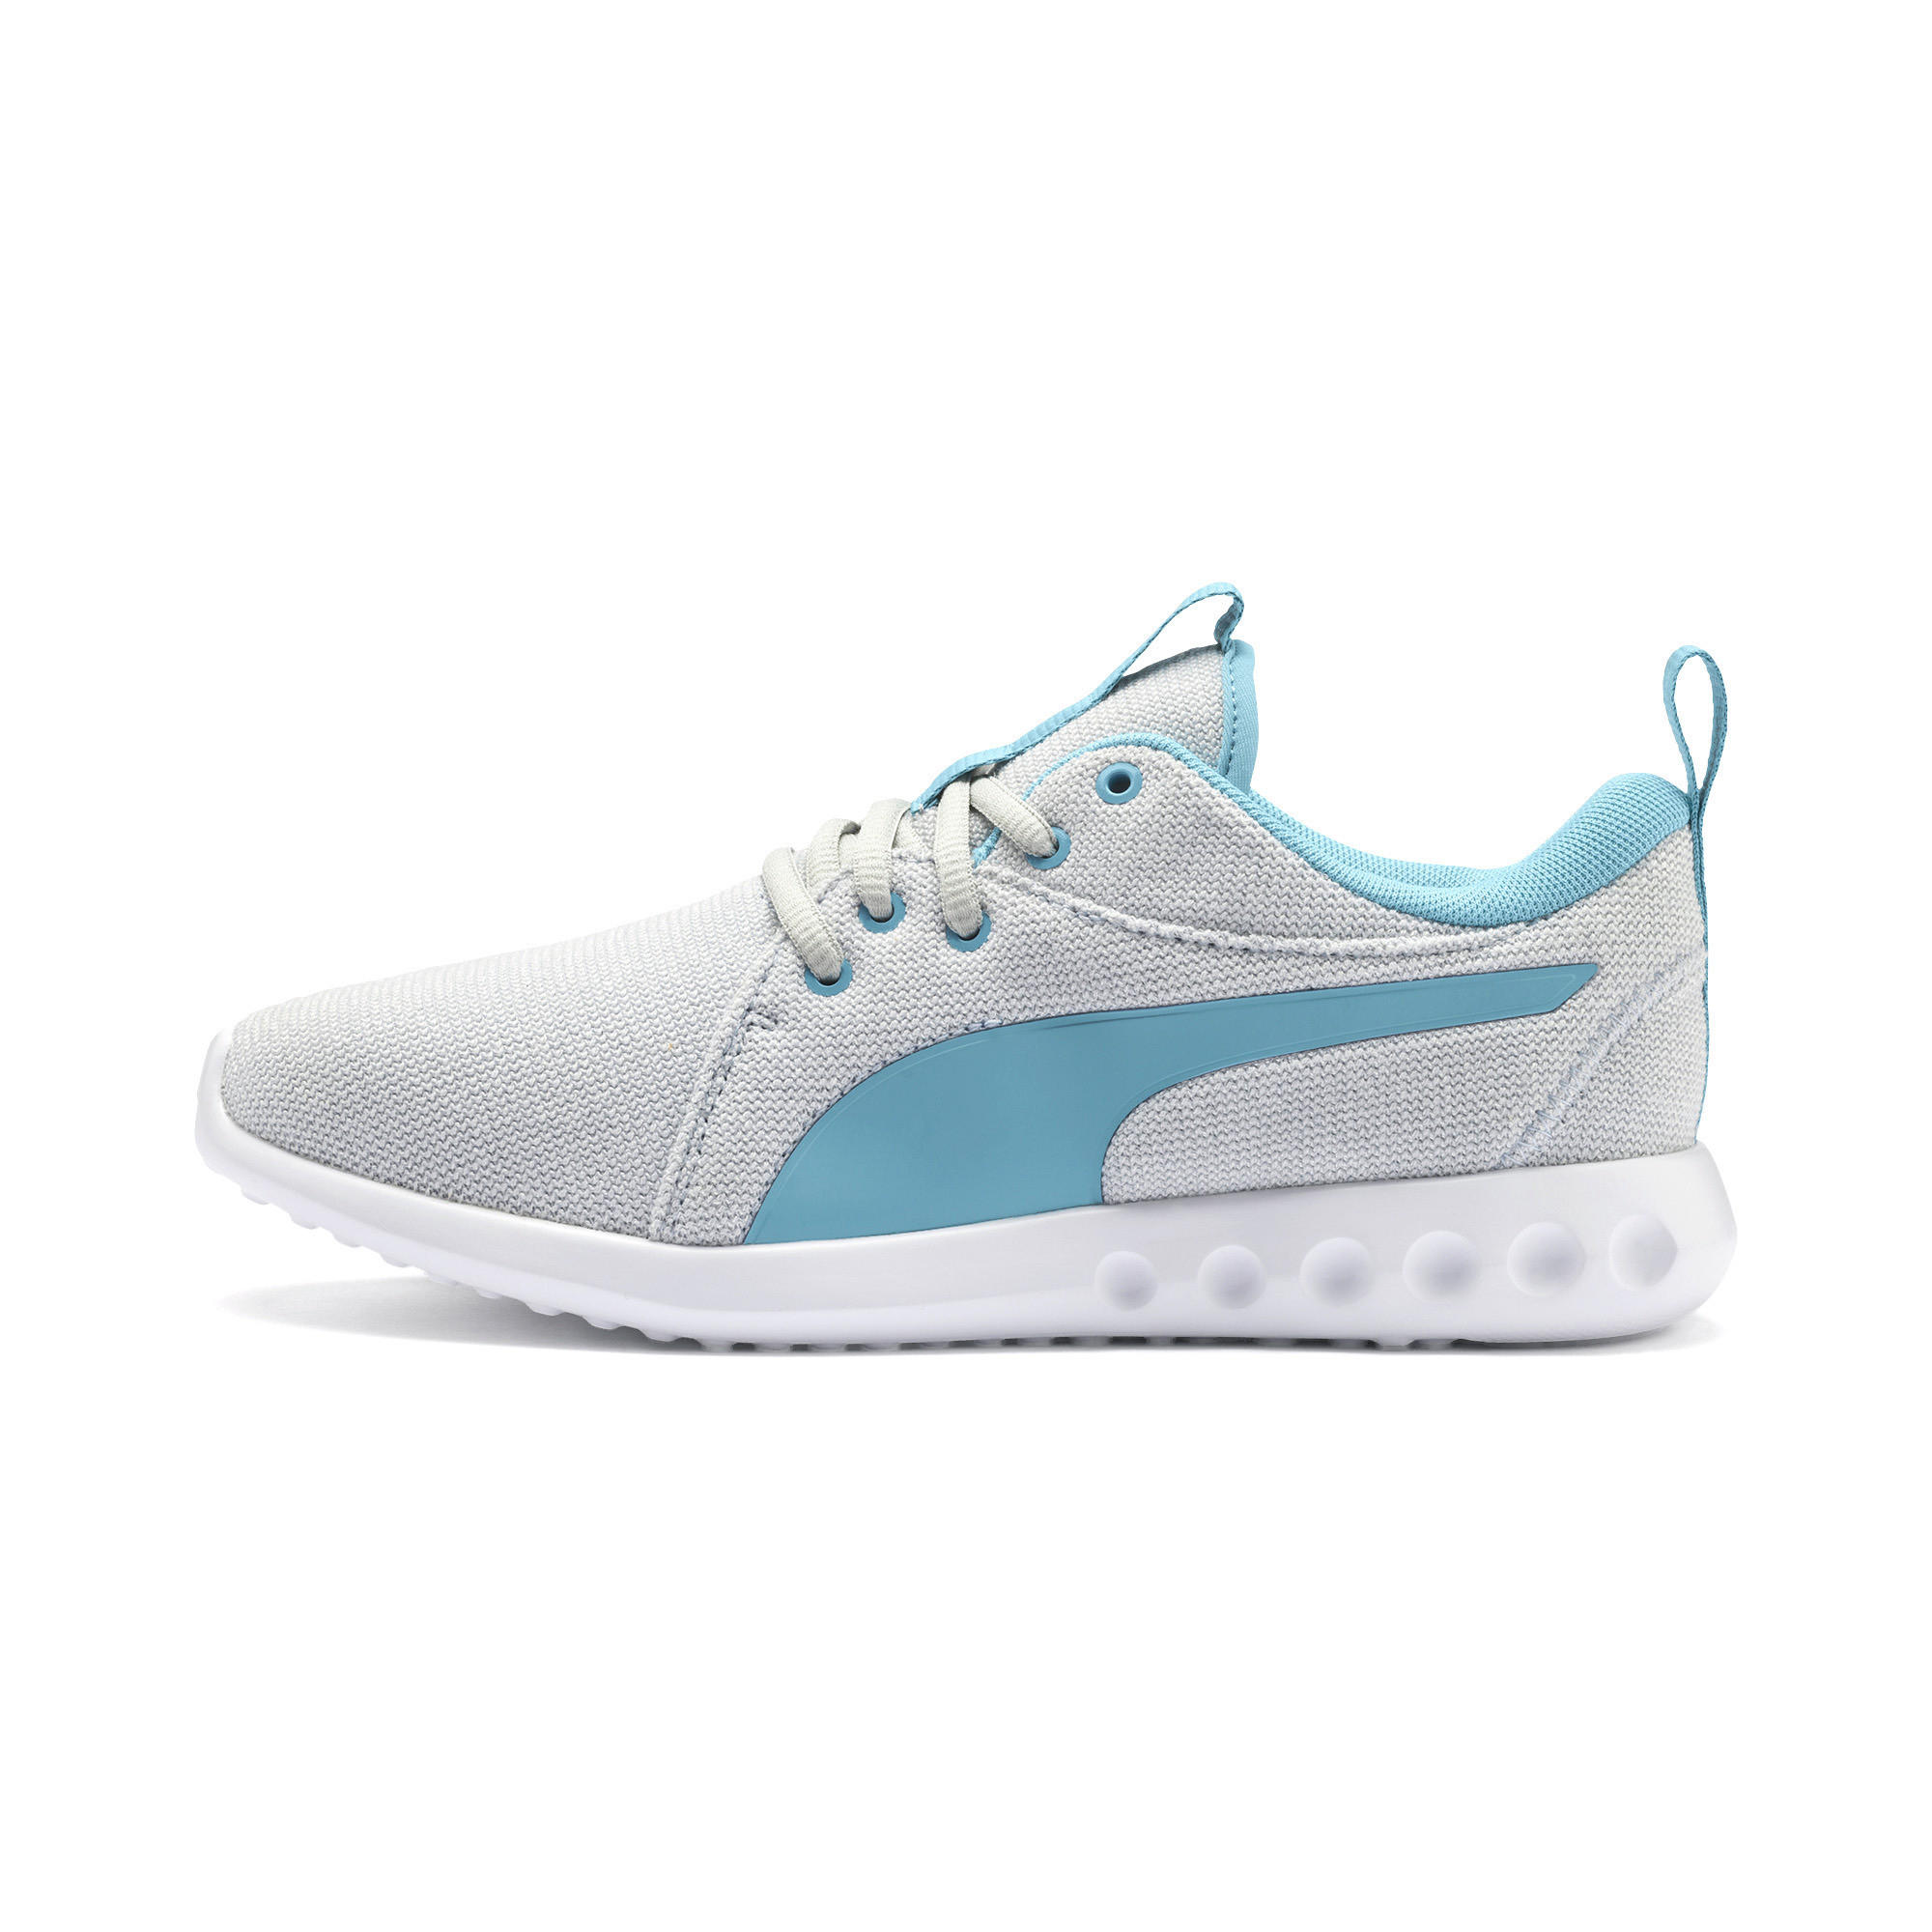 PUMA-Women-039-s-Carson-2-Knit-Running-Shoes thumbnail 35